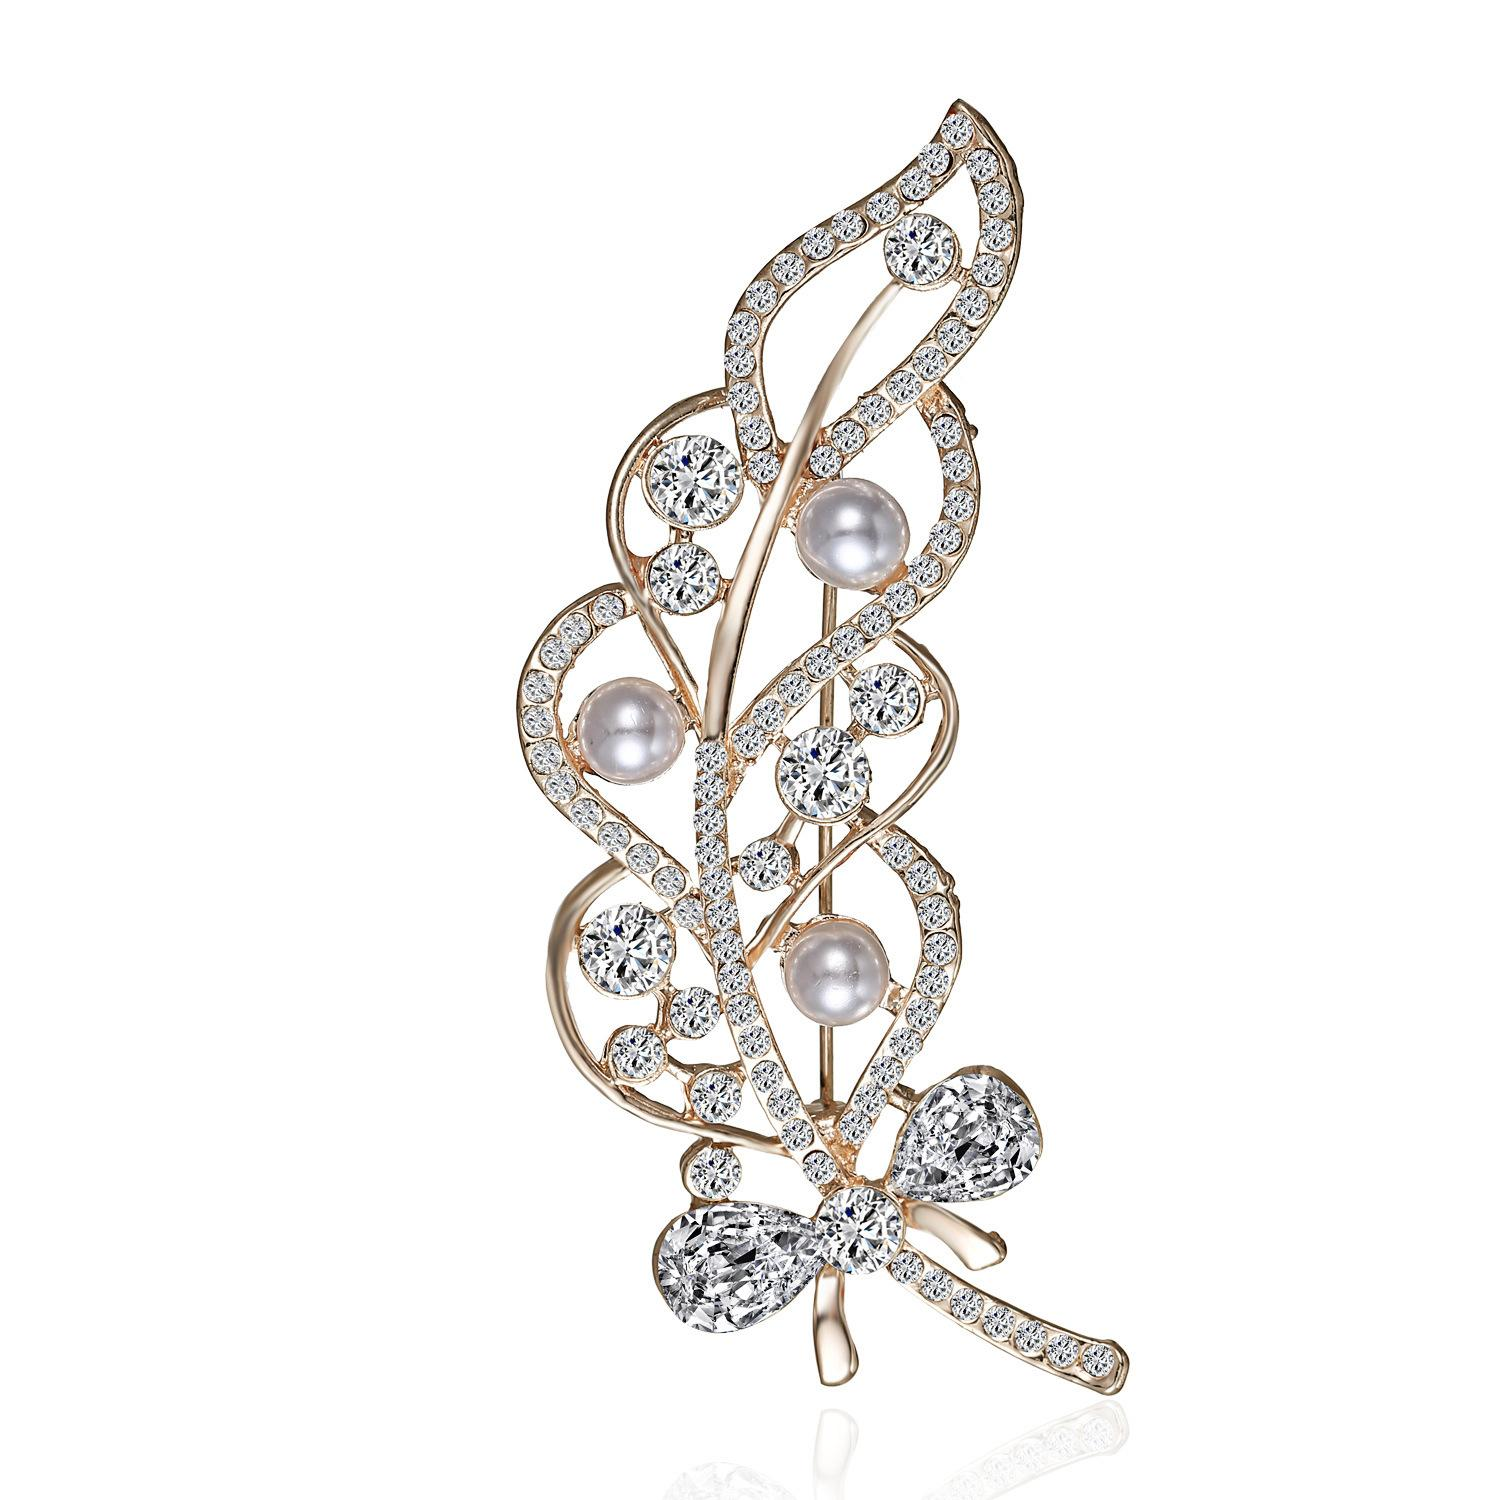 b956b0f7a 2019 Fashion Pearl Brooch Pin For Clothes 2018 Leaf Pins And Brooches For  Women Cute Rhinestone Brooches Accessories For Best Friend From Burtwang,  ...